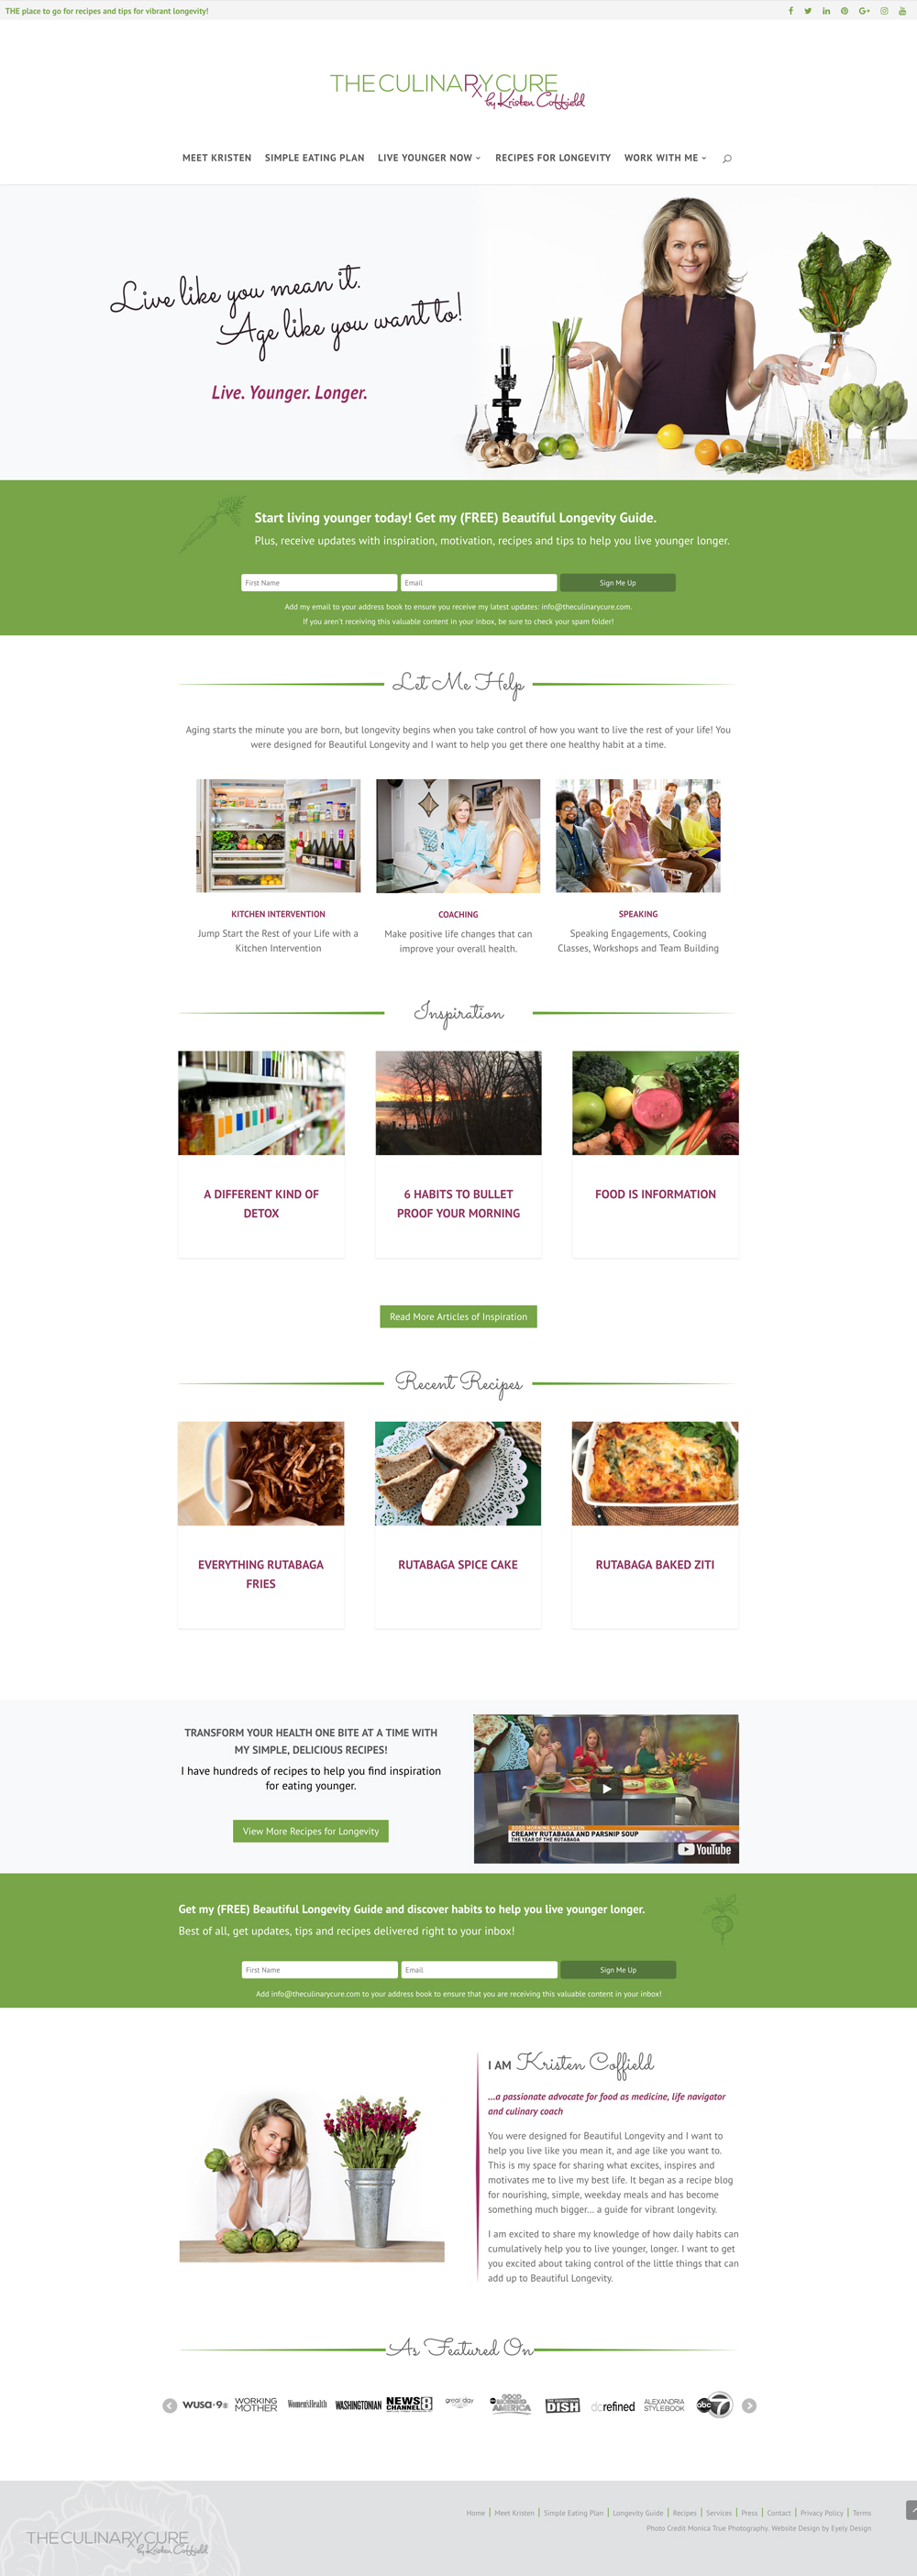 health recipe website design kristen coffield the culinary cure